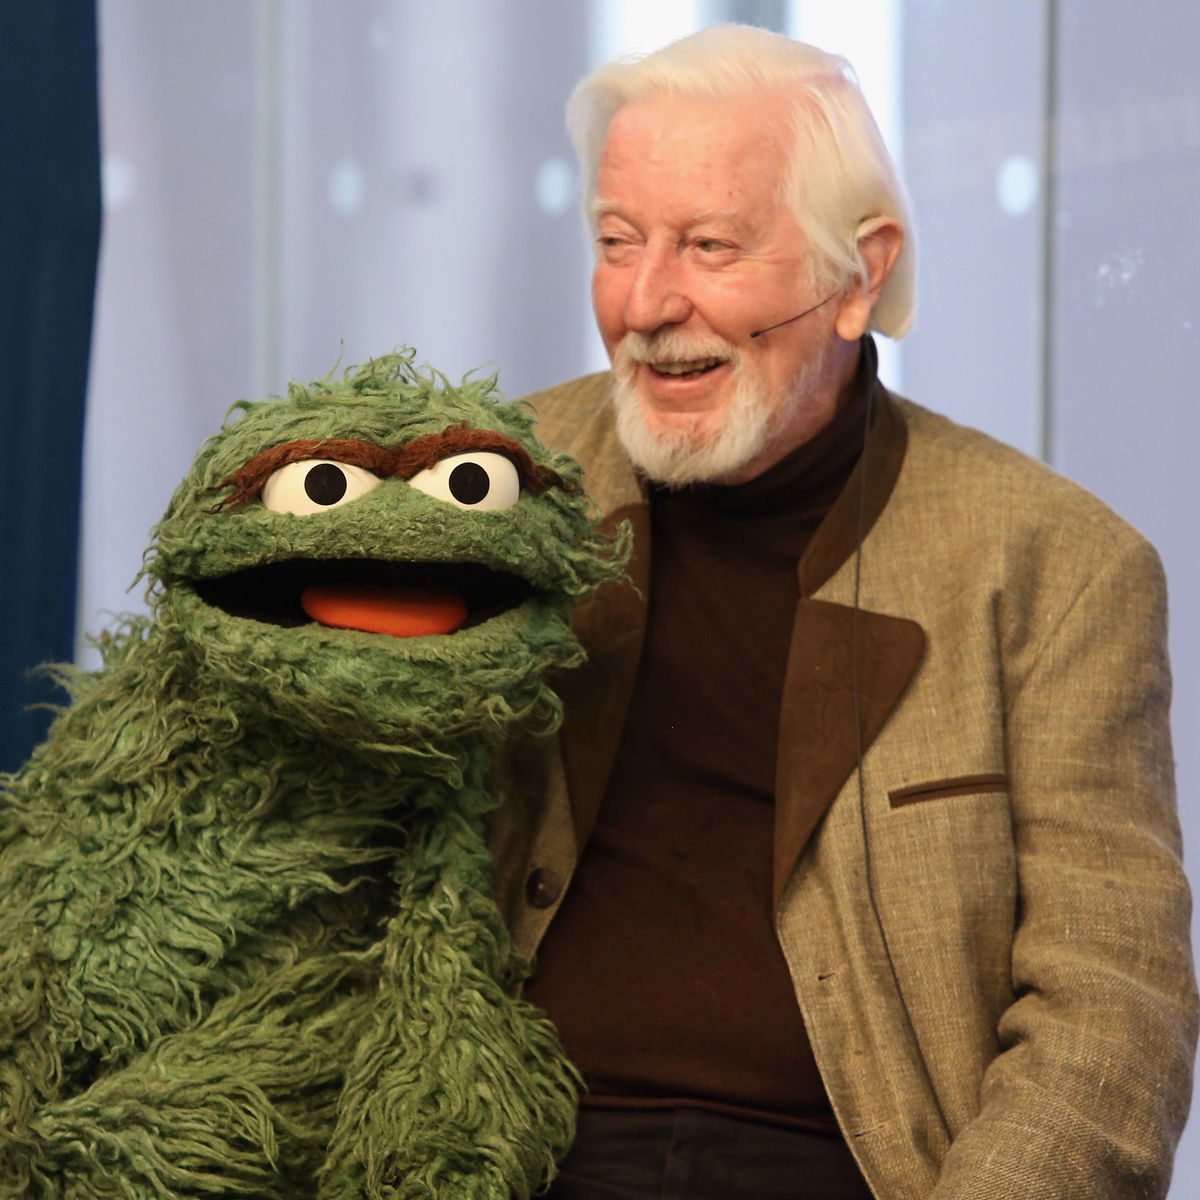 Caroll Spinney, 'Sesame Street's Big Bird For 50 Years, Is Retiring